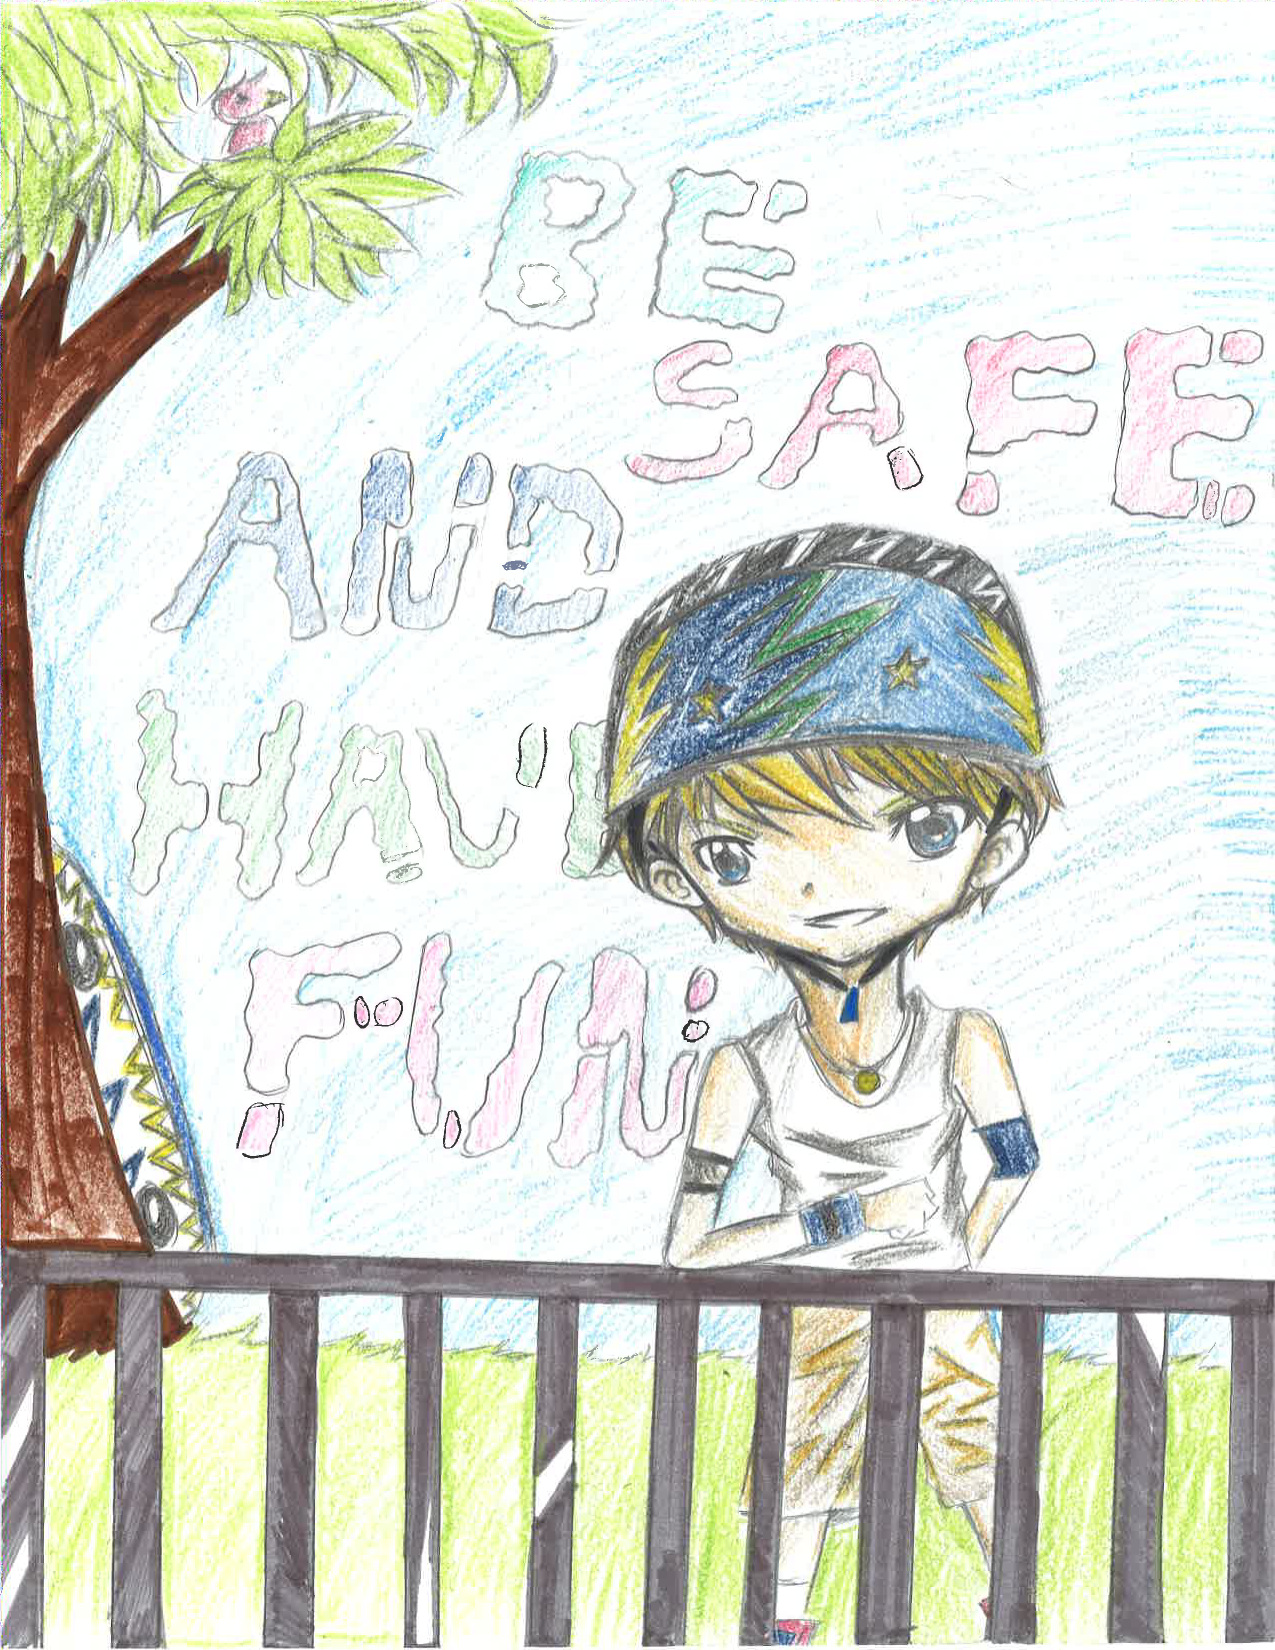 Boy saying be safe and have fun